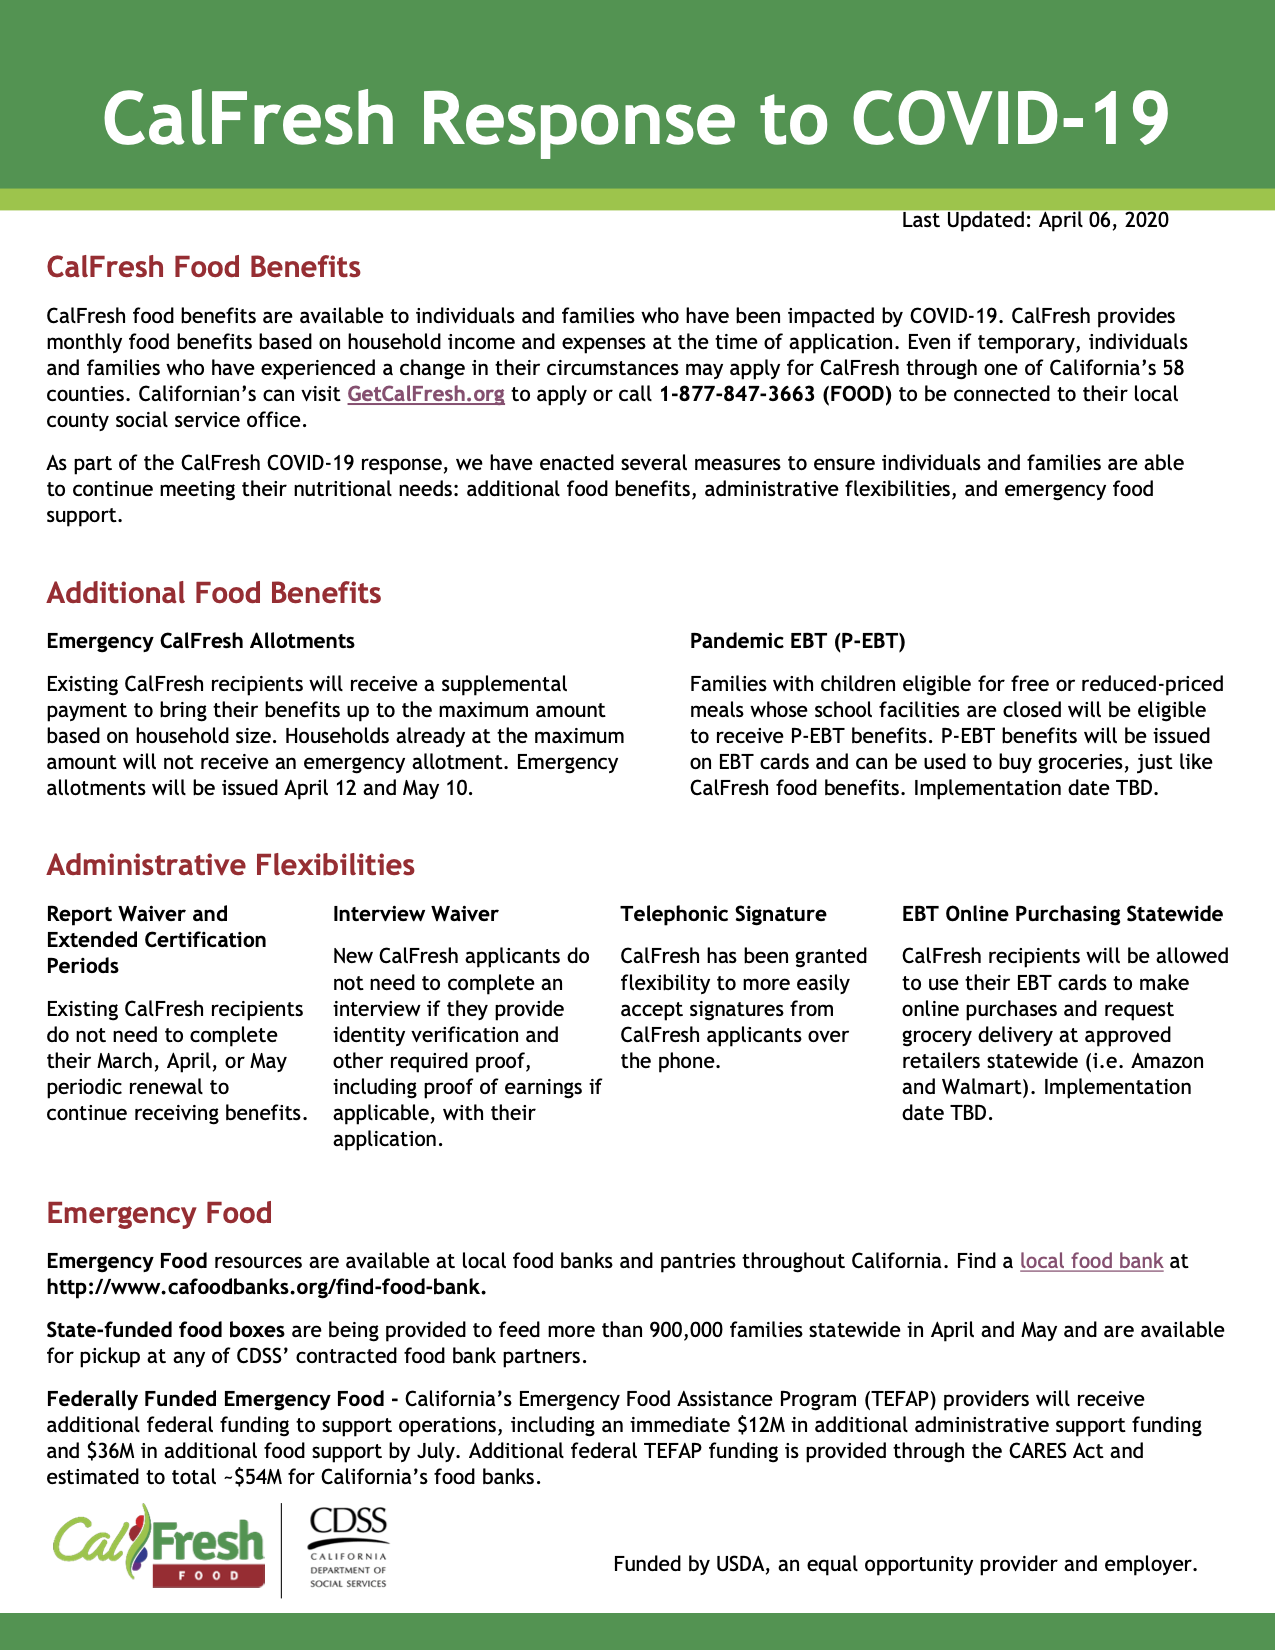 List of CalFresh Resources available in response to COVID 19